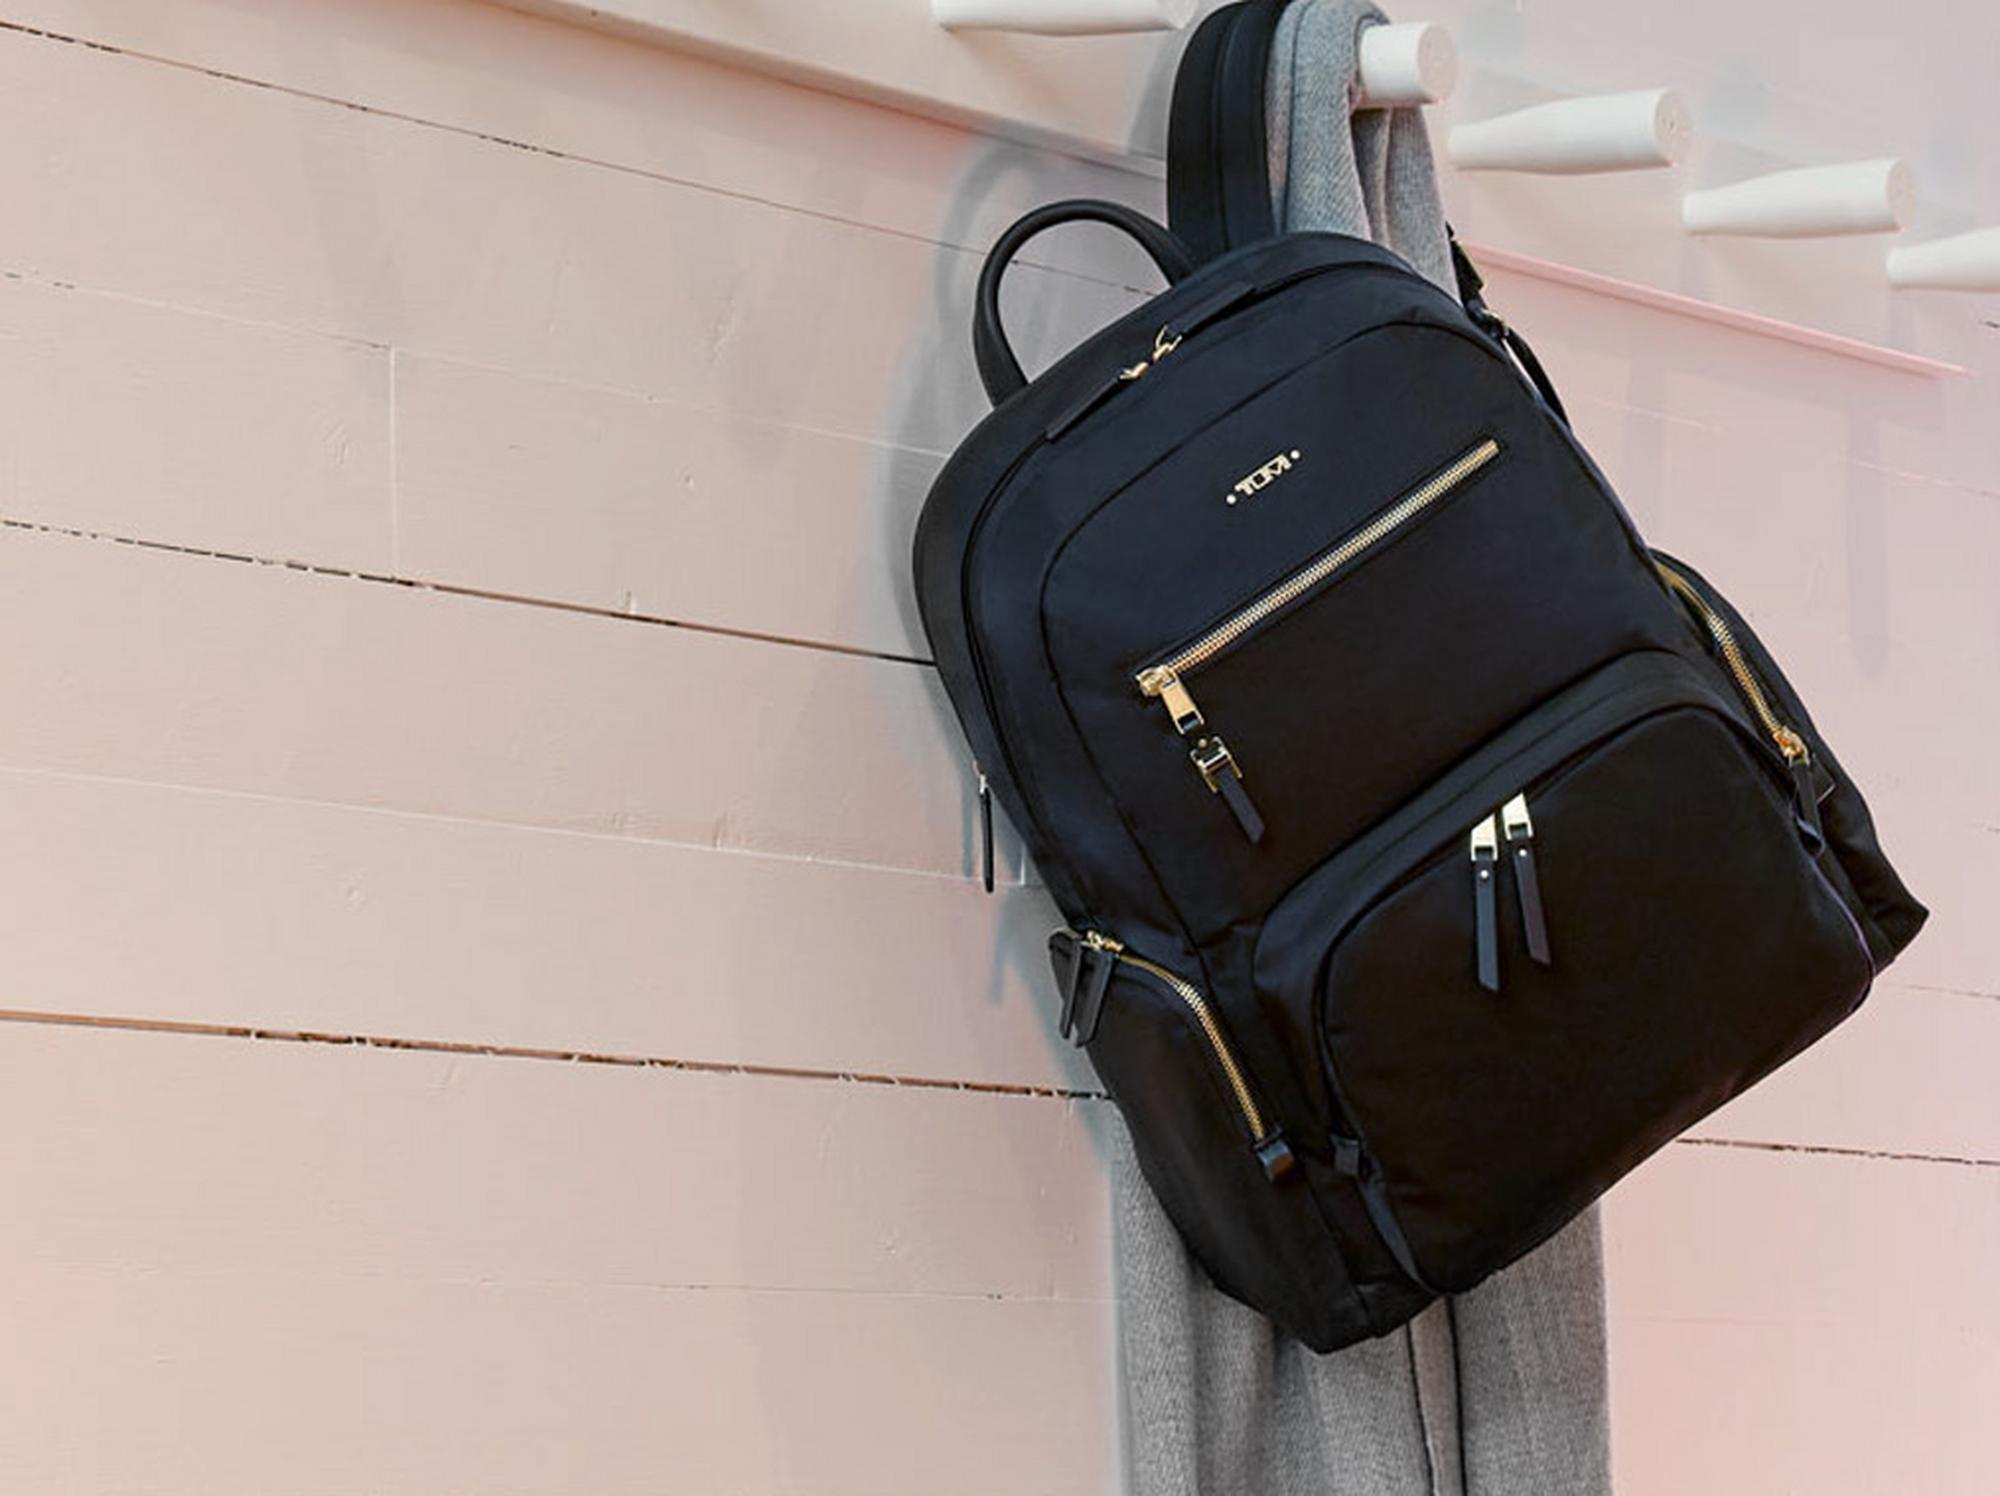 Luggage, Backpacks, Bags & More - TUMI US